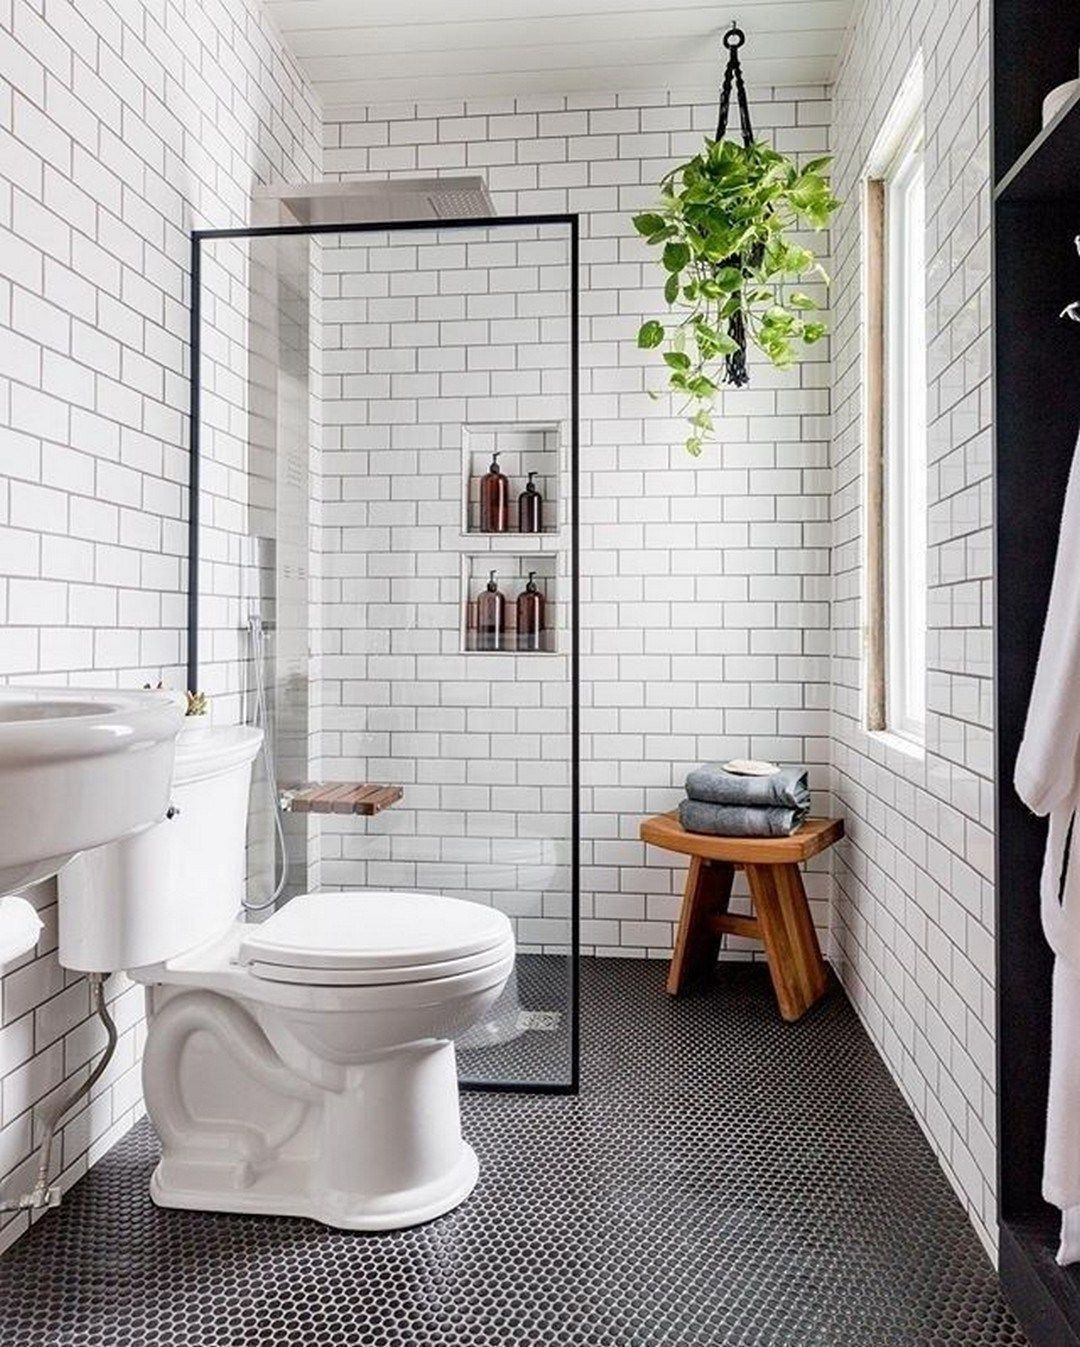 49 Most Popular Basement Bathroom Remodel Ideas On A Budget Low Ceiling And For Small Space In 2020 Small Bathroom Bathroom Transformation Bathrooms Remodel